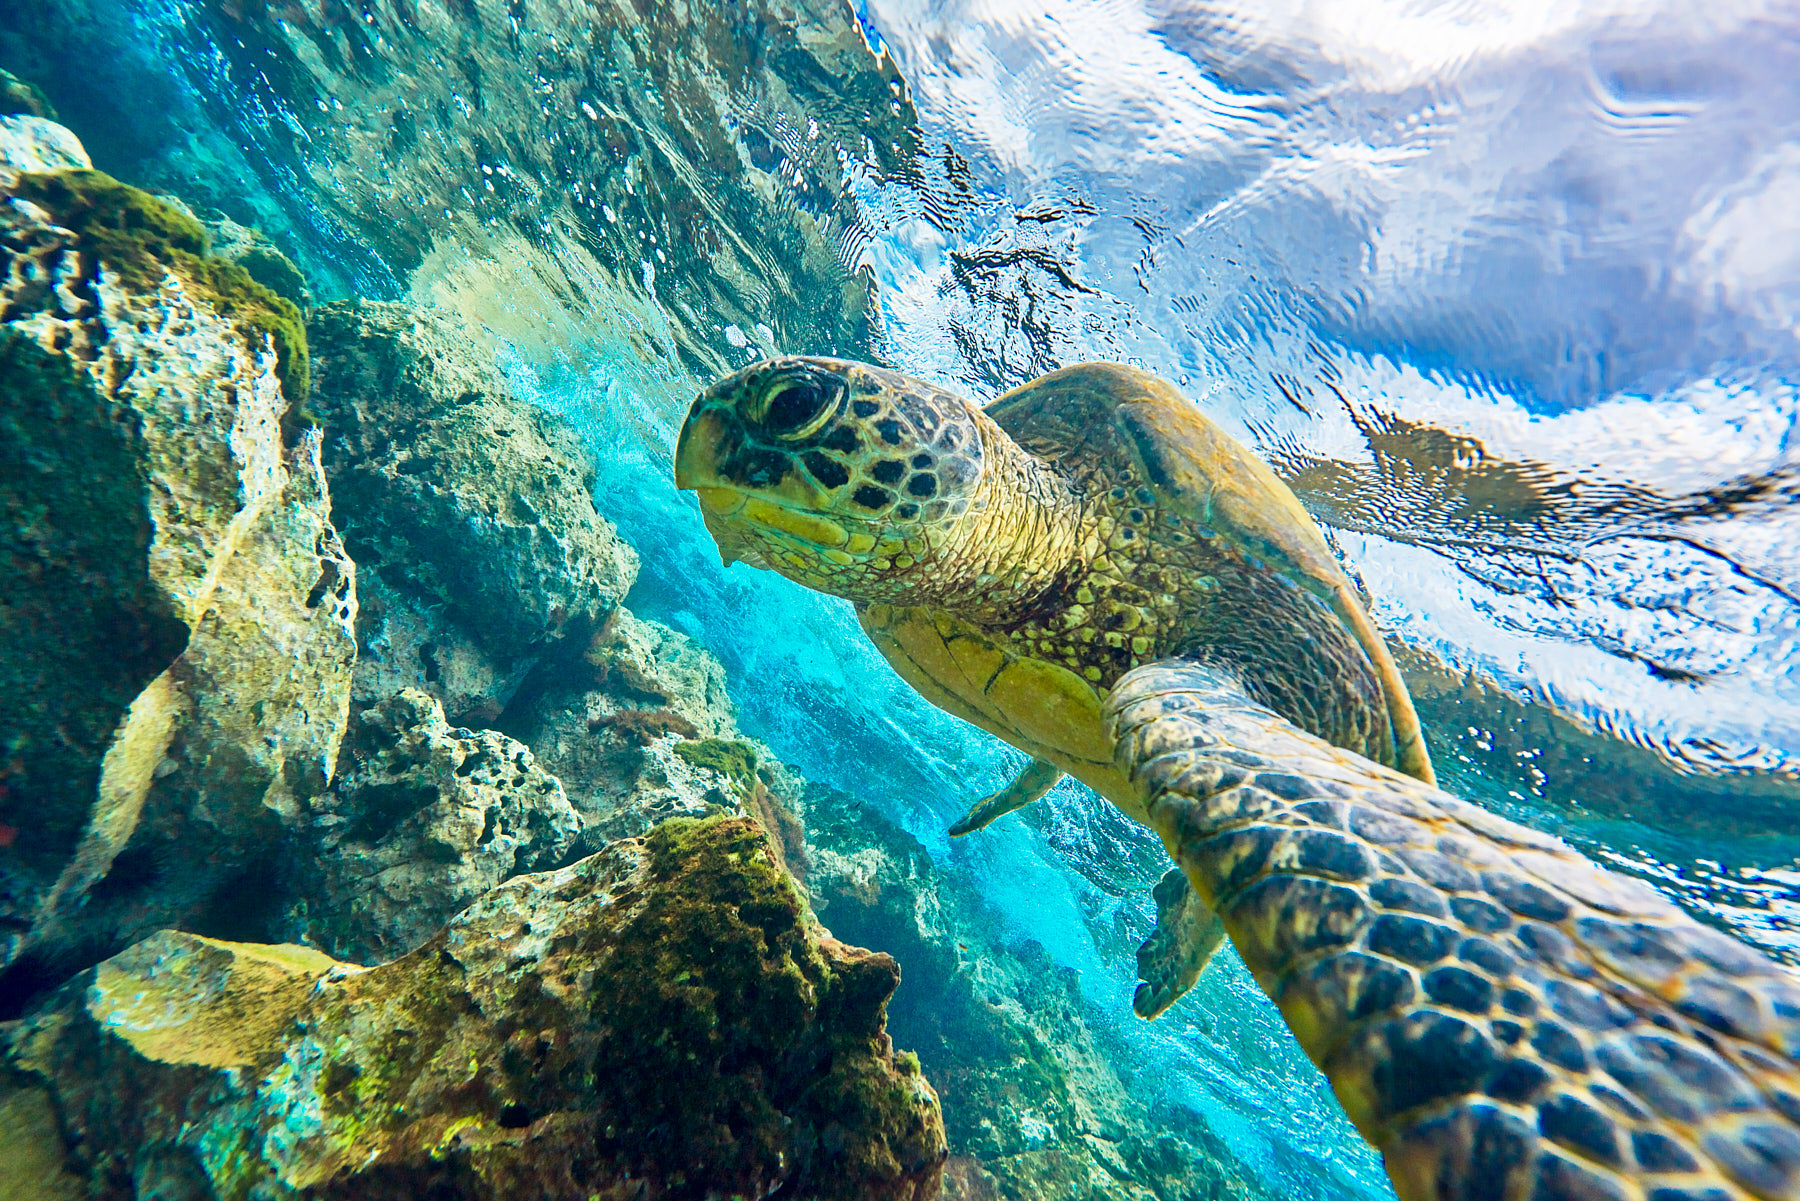 underwater photograph of a turtle (also known as honu in Hawaiian) and the angle appears as if the turtle is taking a selfie